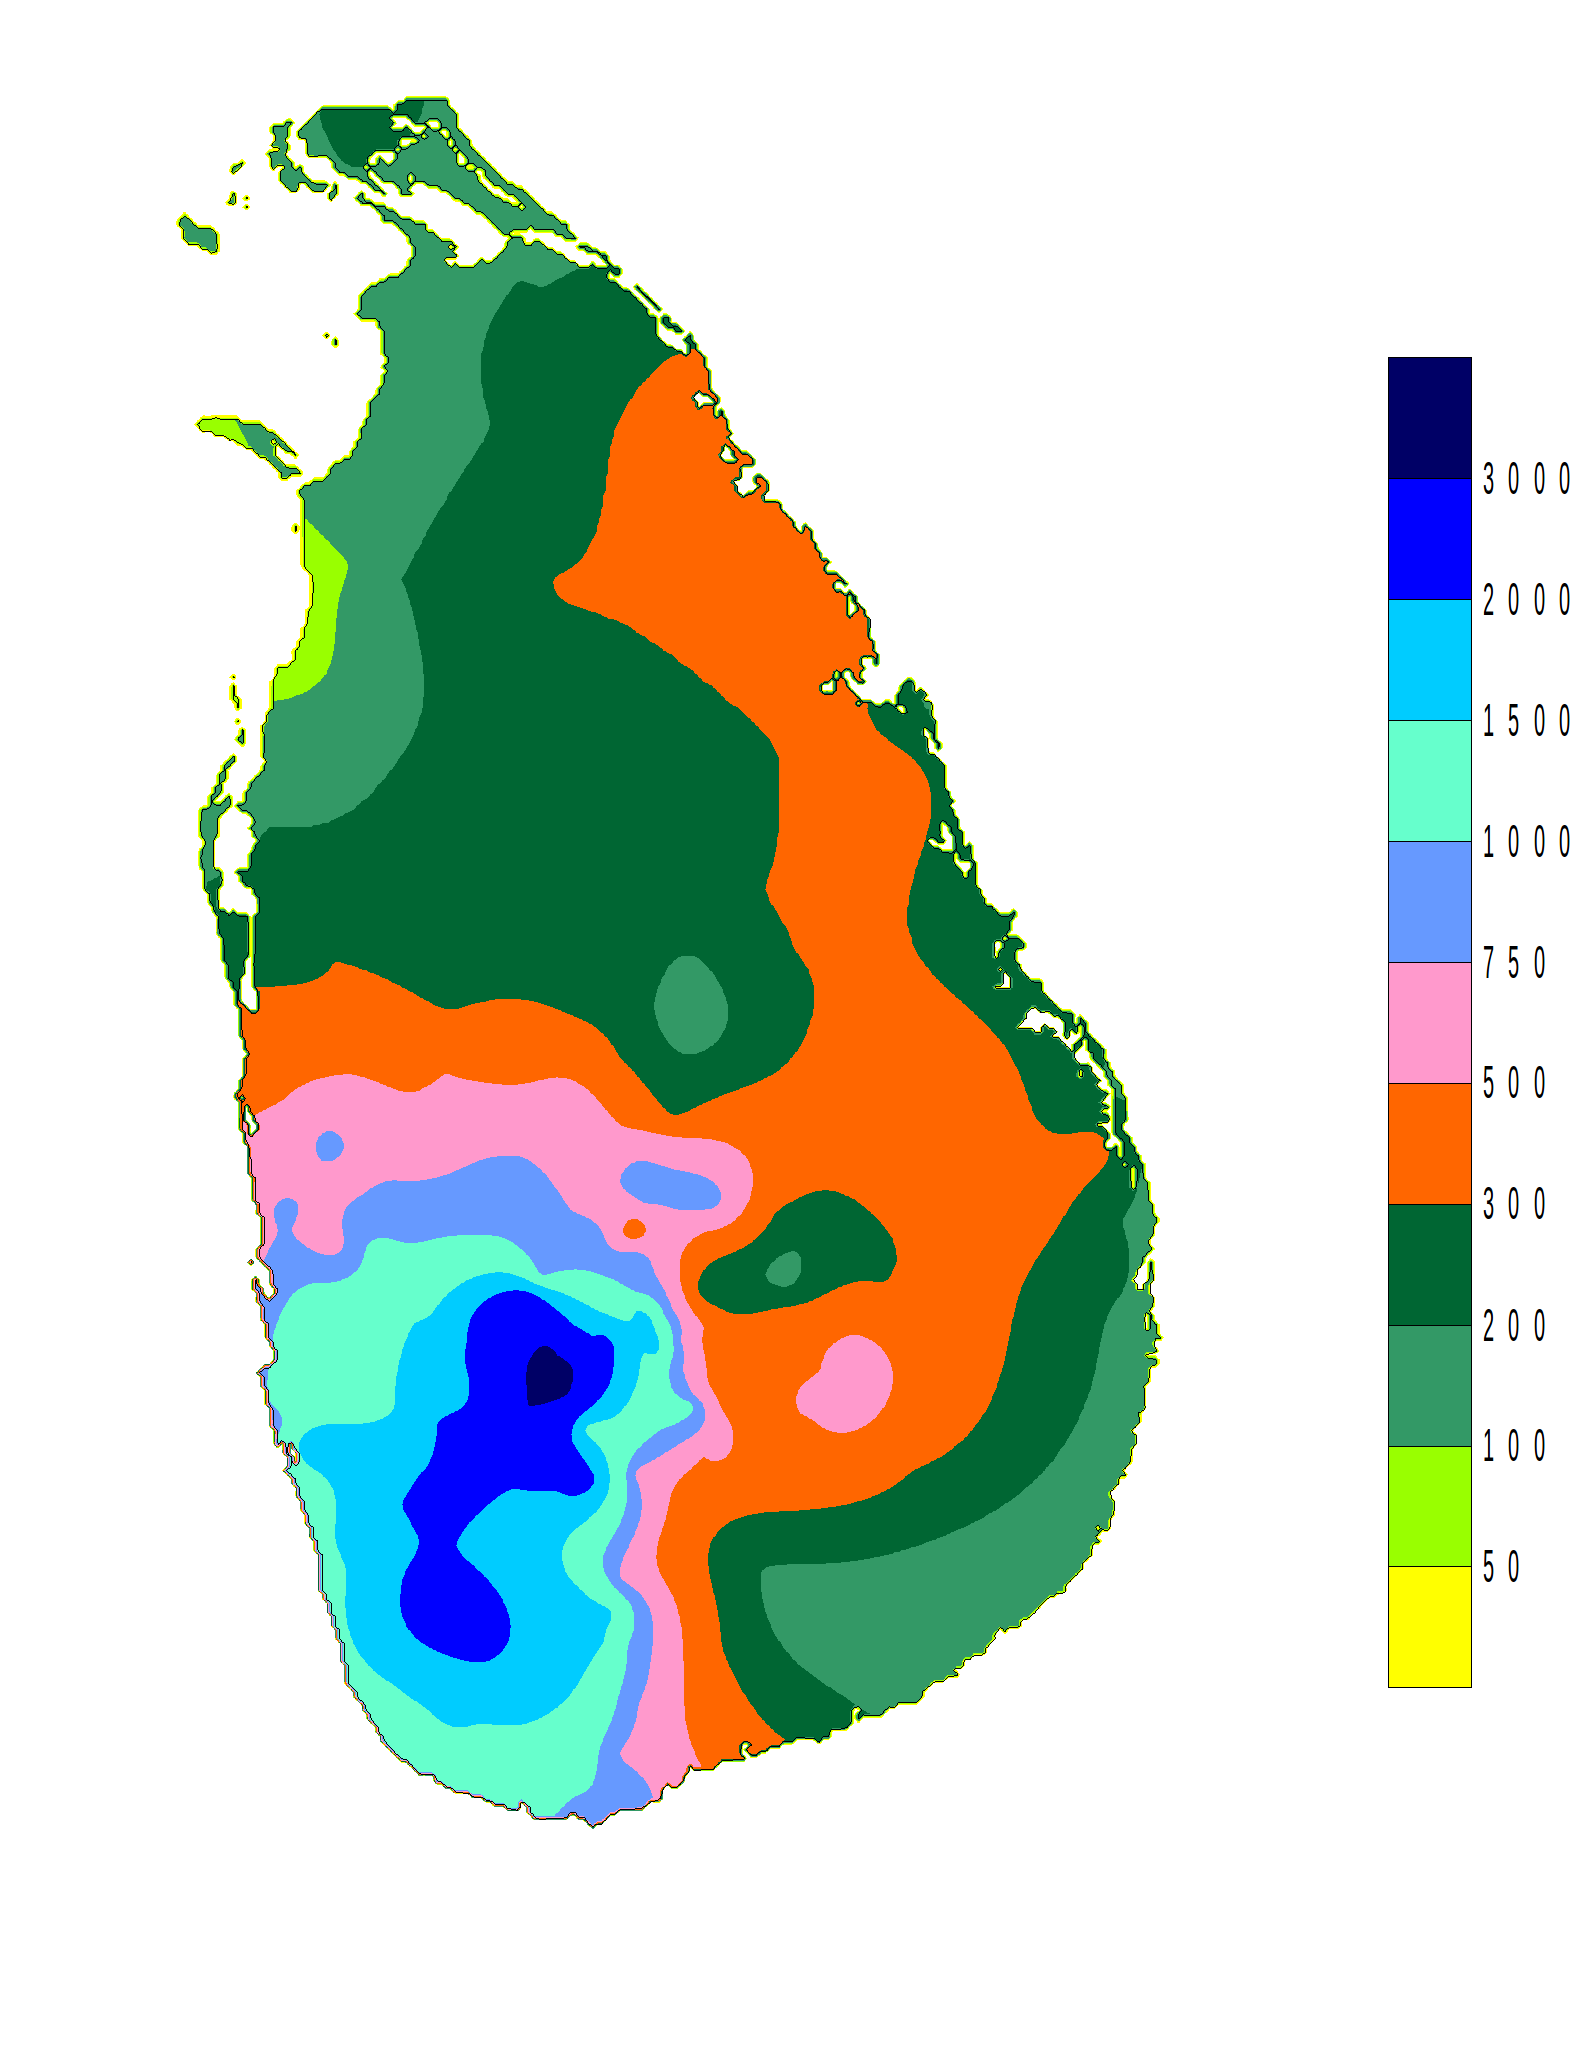 South-West monsoon (May-Sept)